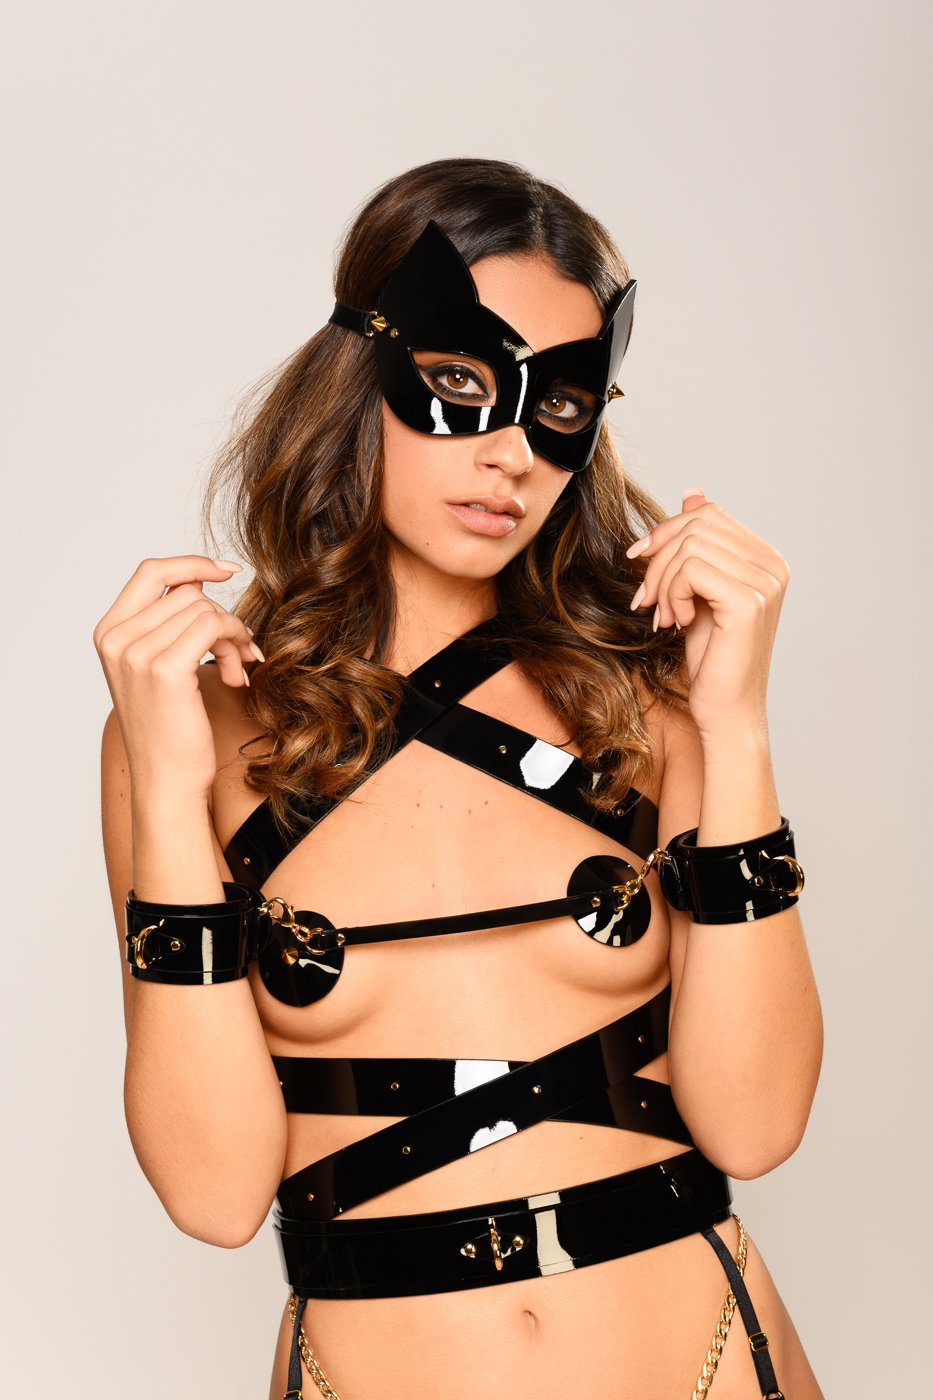 Rica Molded Kitten Mask in Black with gold spikes by Fraulein Kink